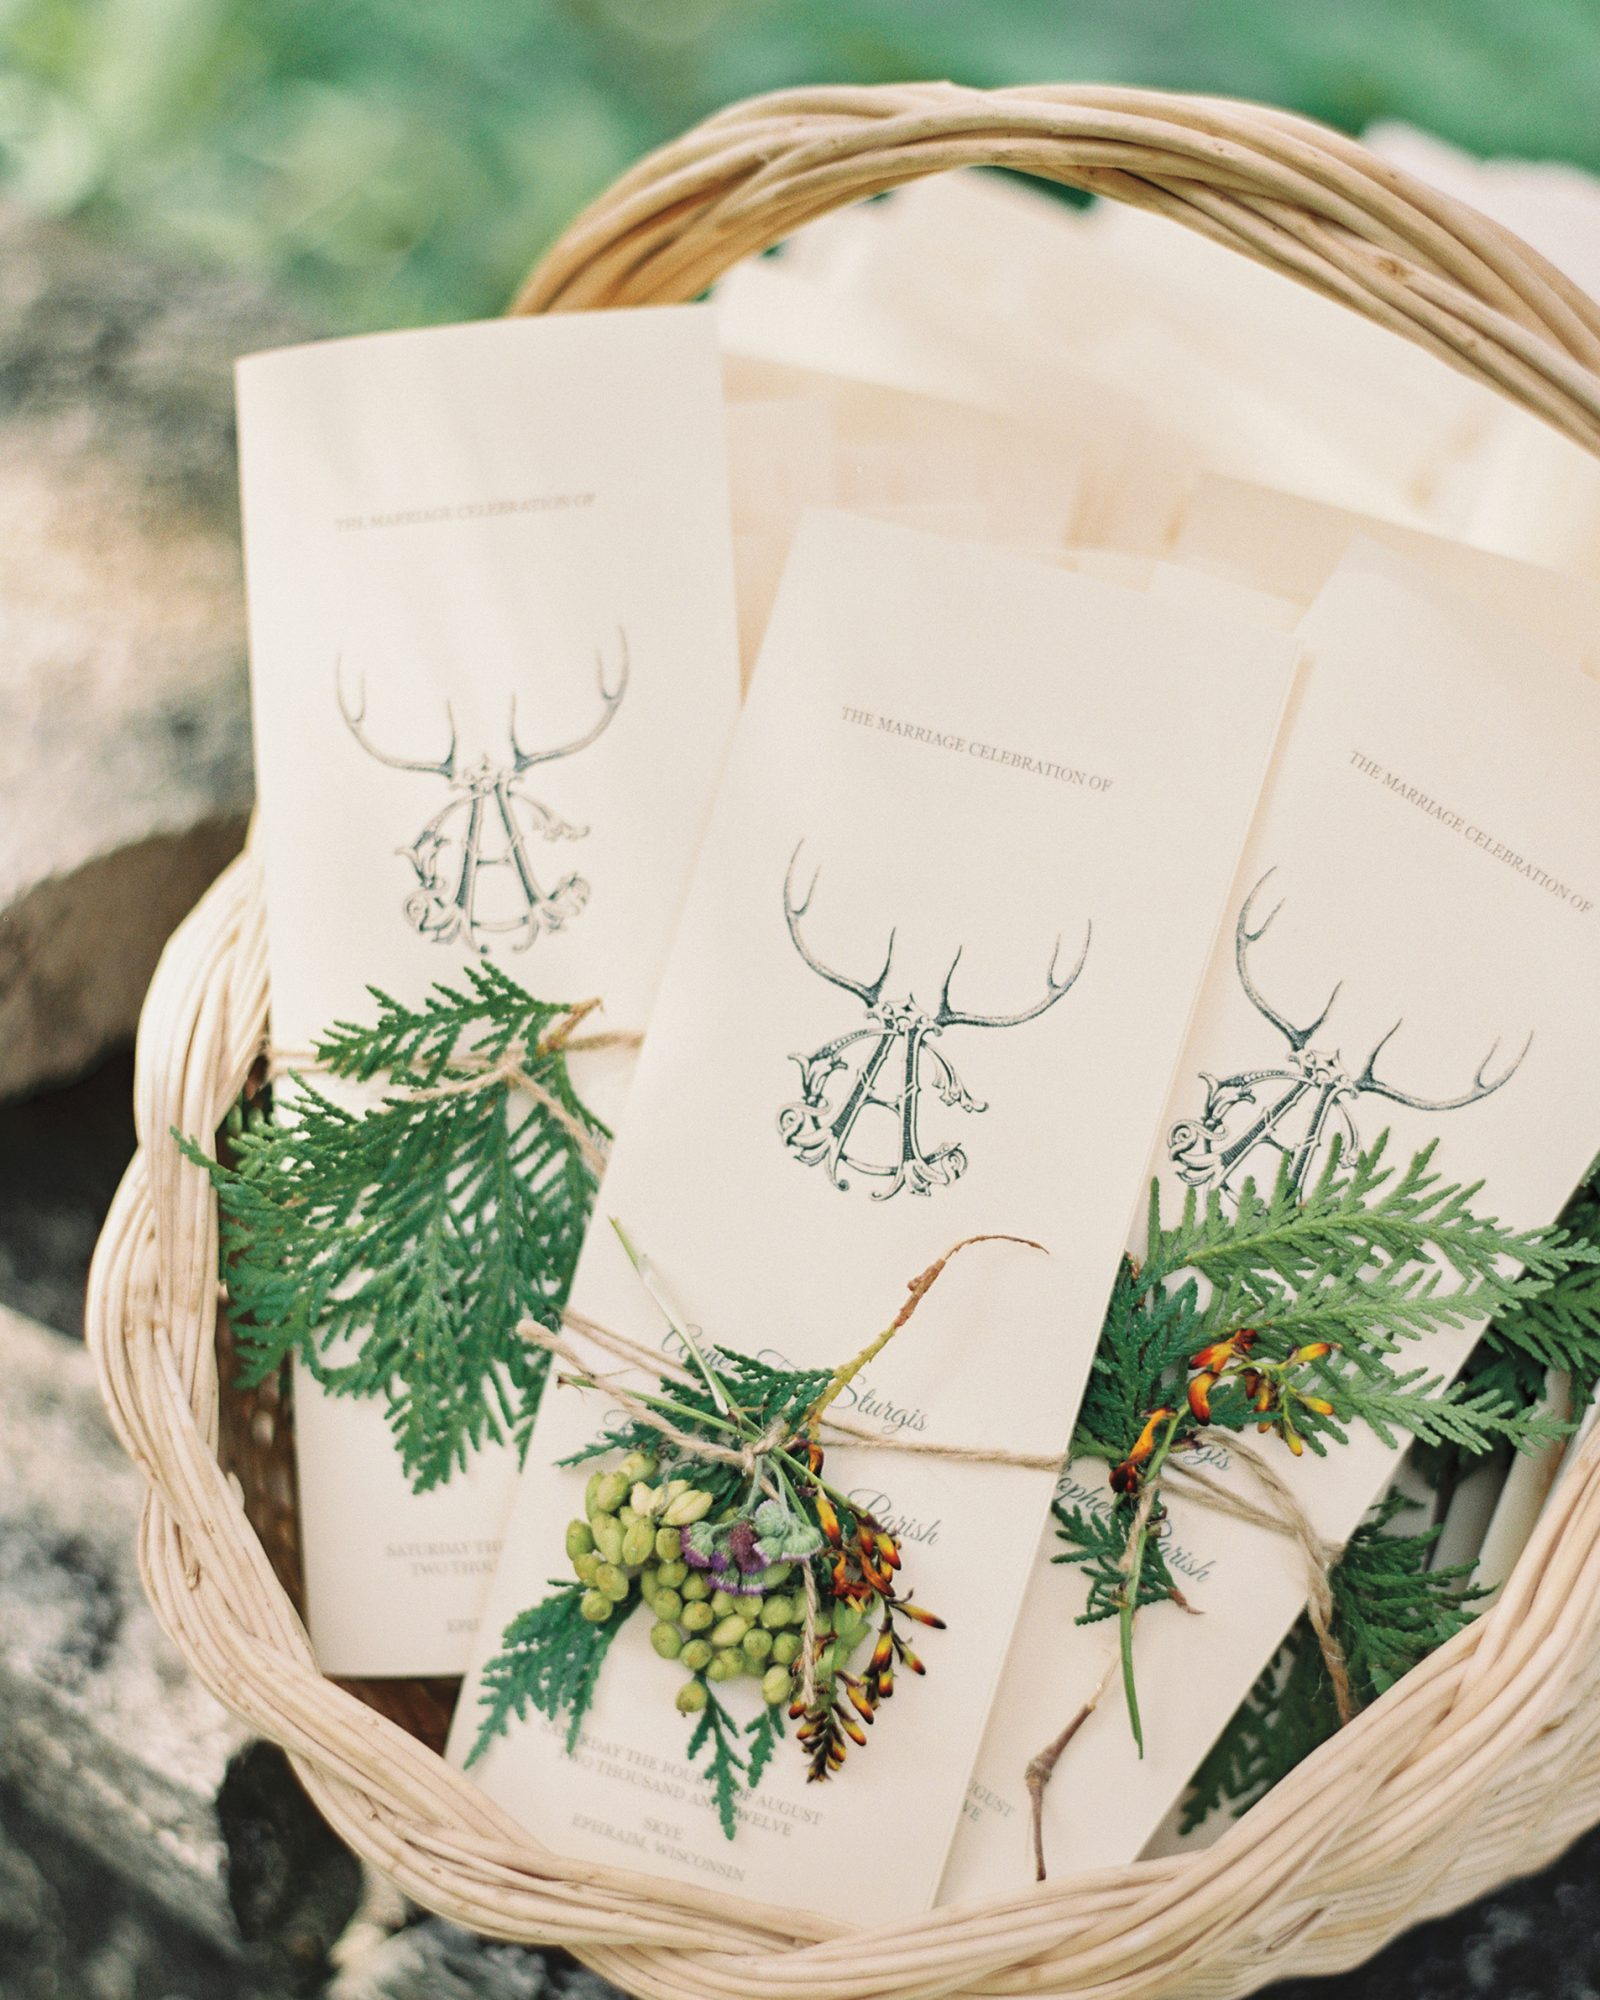 basket-invitations-evergreen-door-county-wi-041-mwds110744.jpg